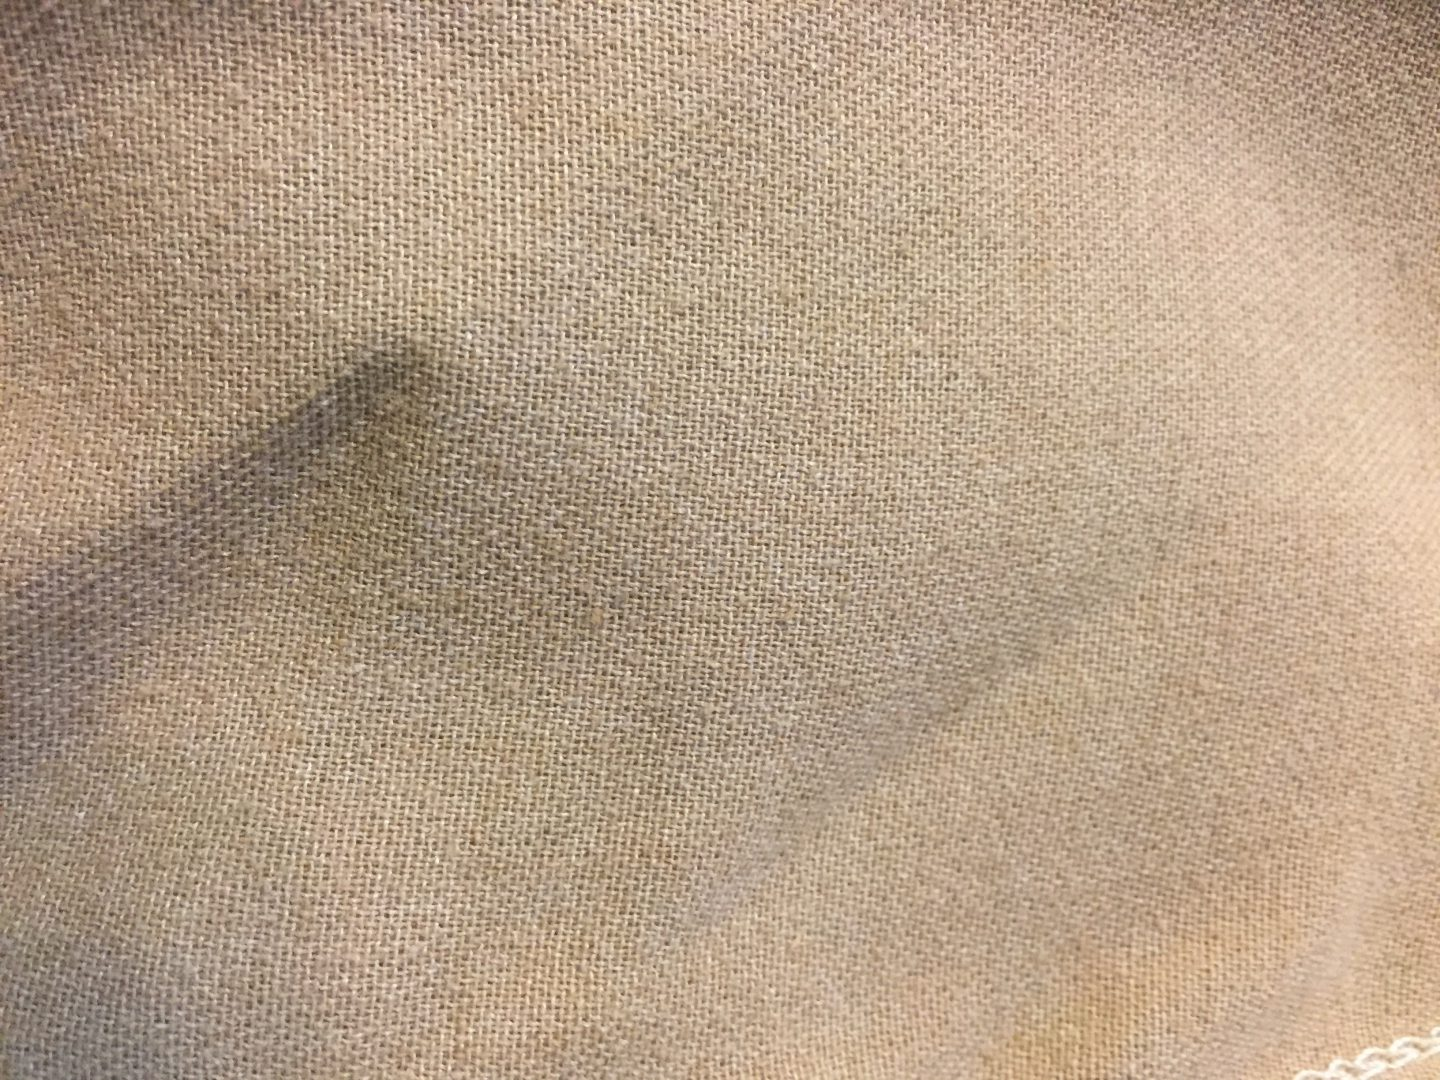 Tan canvas fabric loose knitting texture | Free Textures